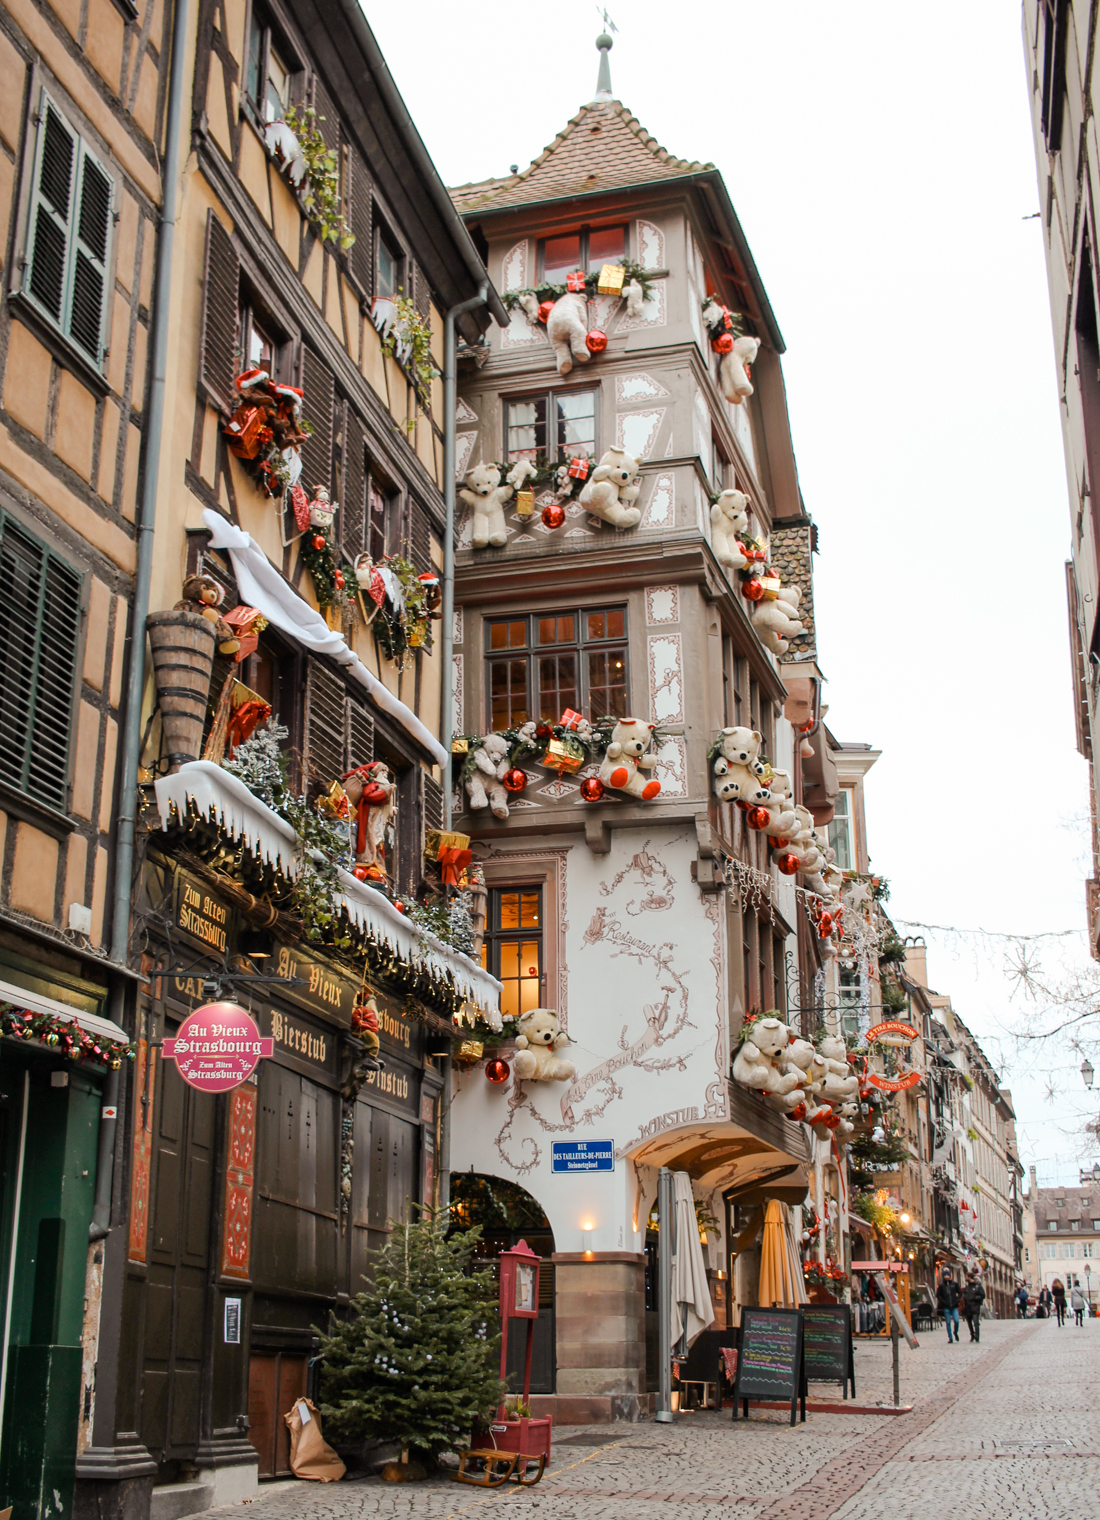 Best Christmas Markets in Europe- Strasbourg